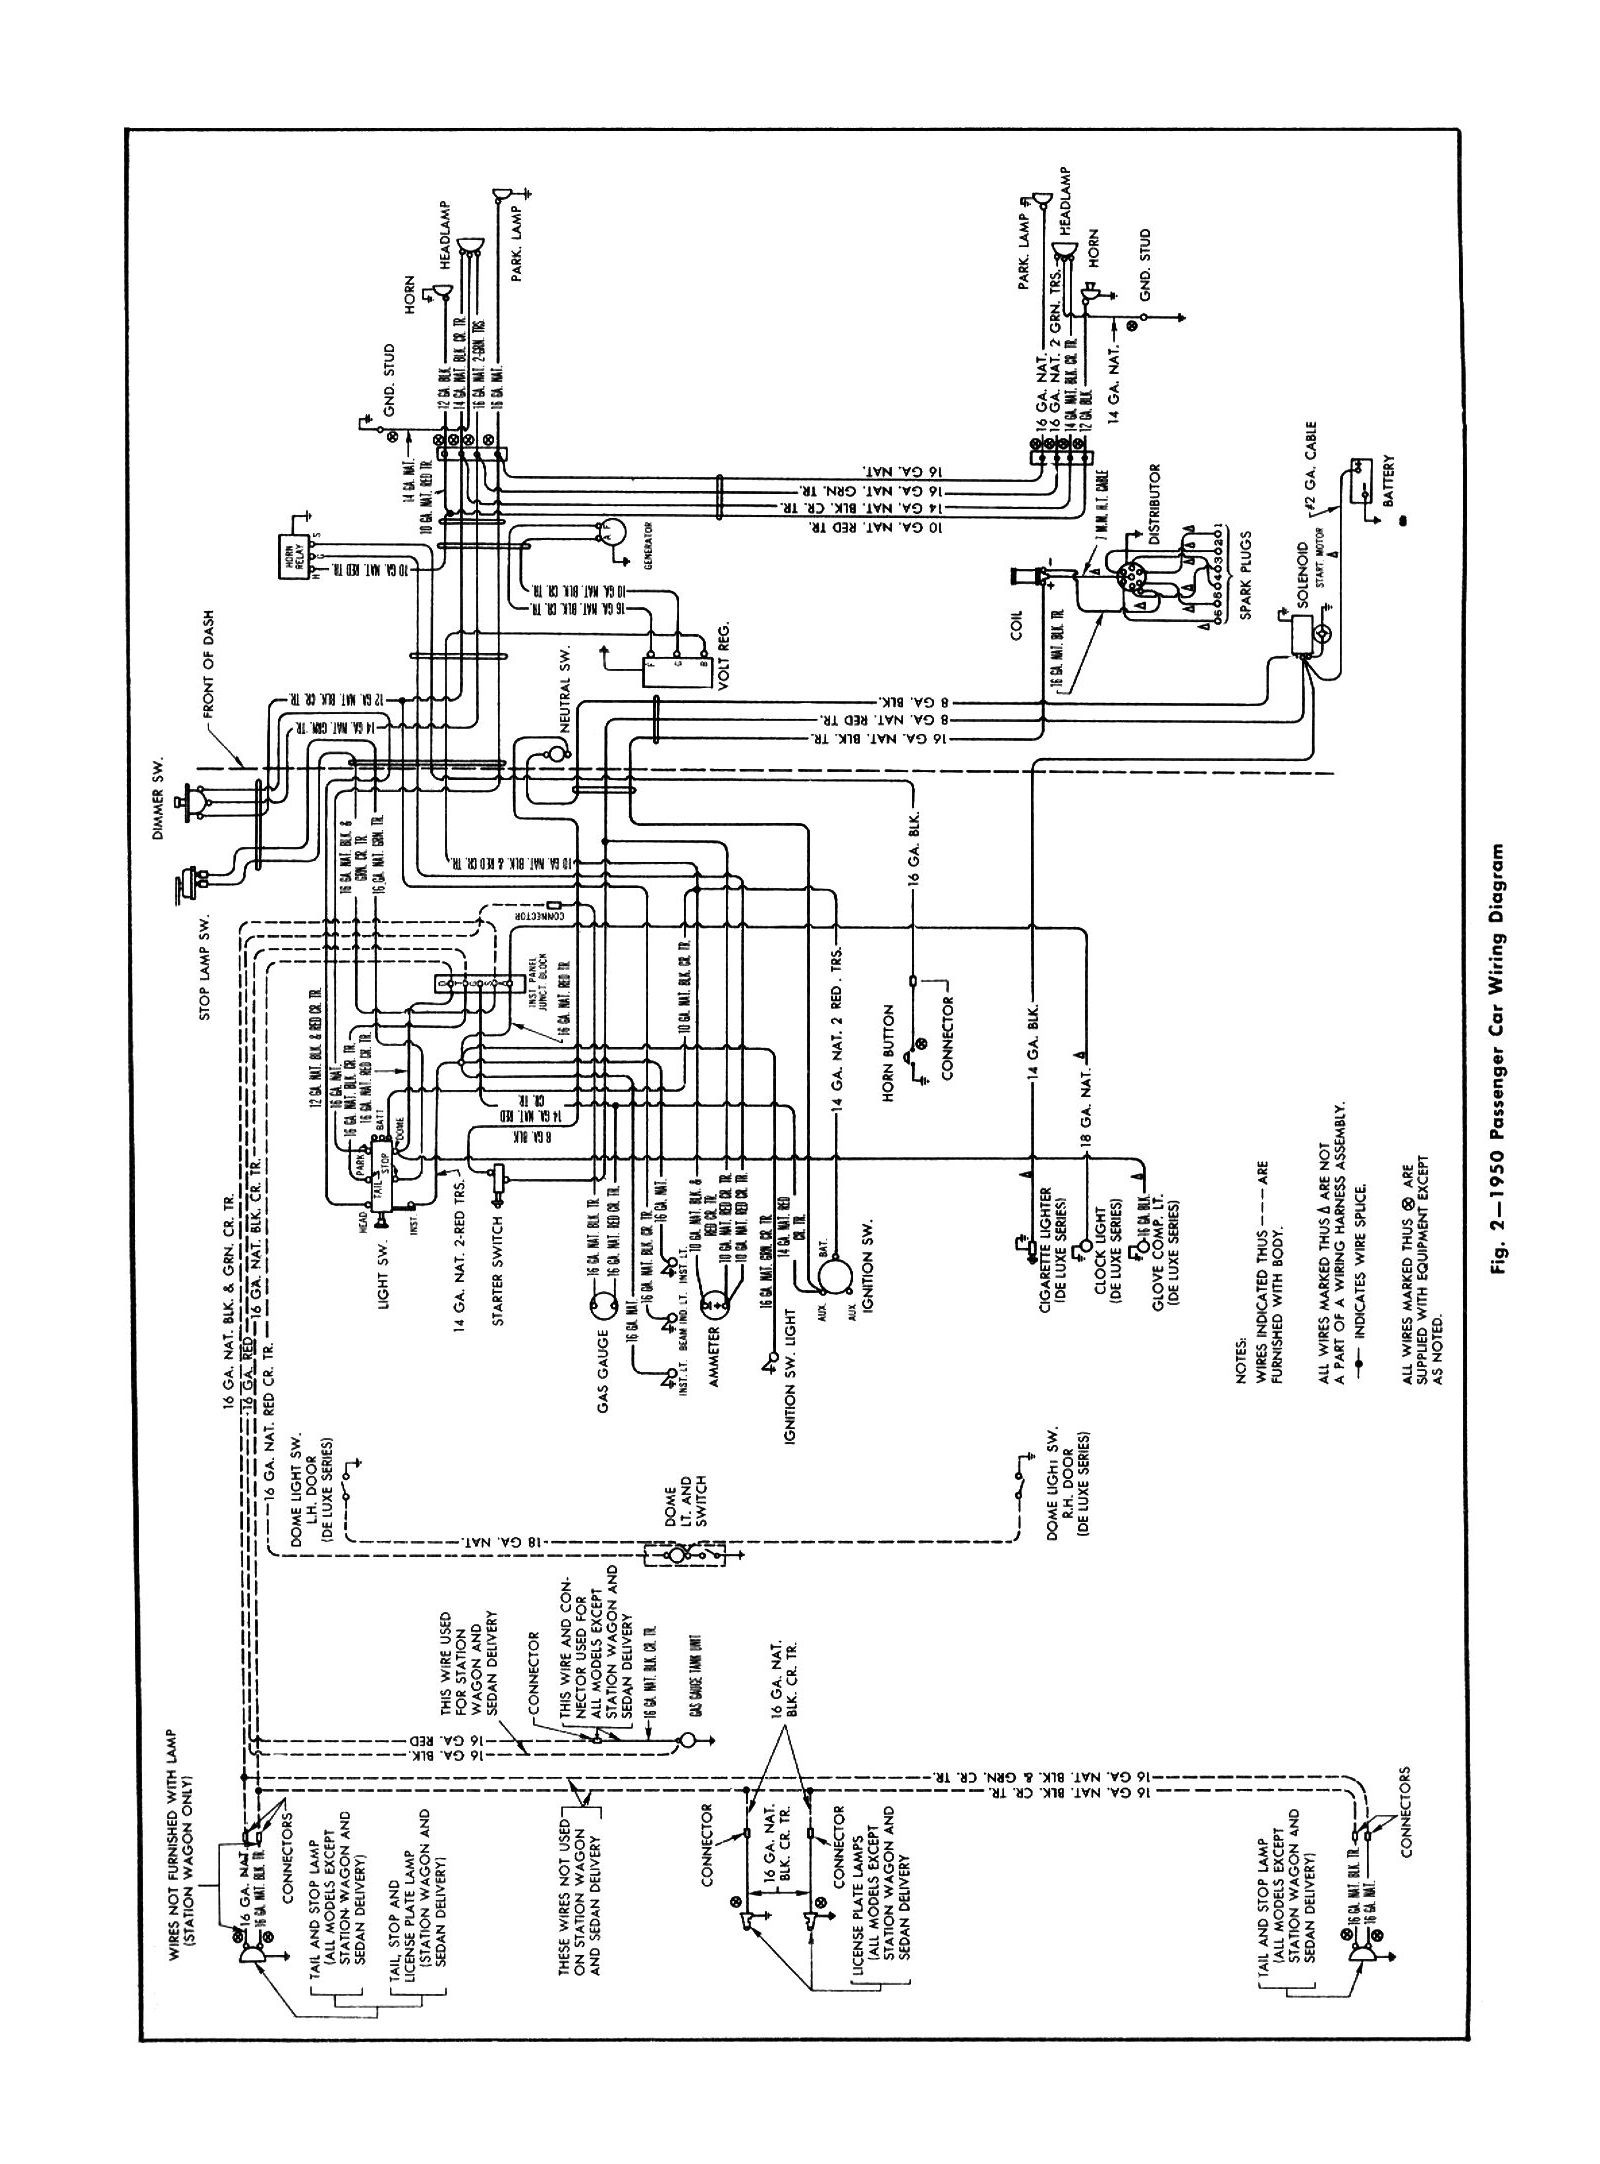 K5 Blazer Radio Diagram